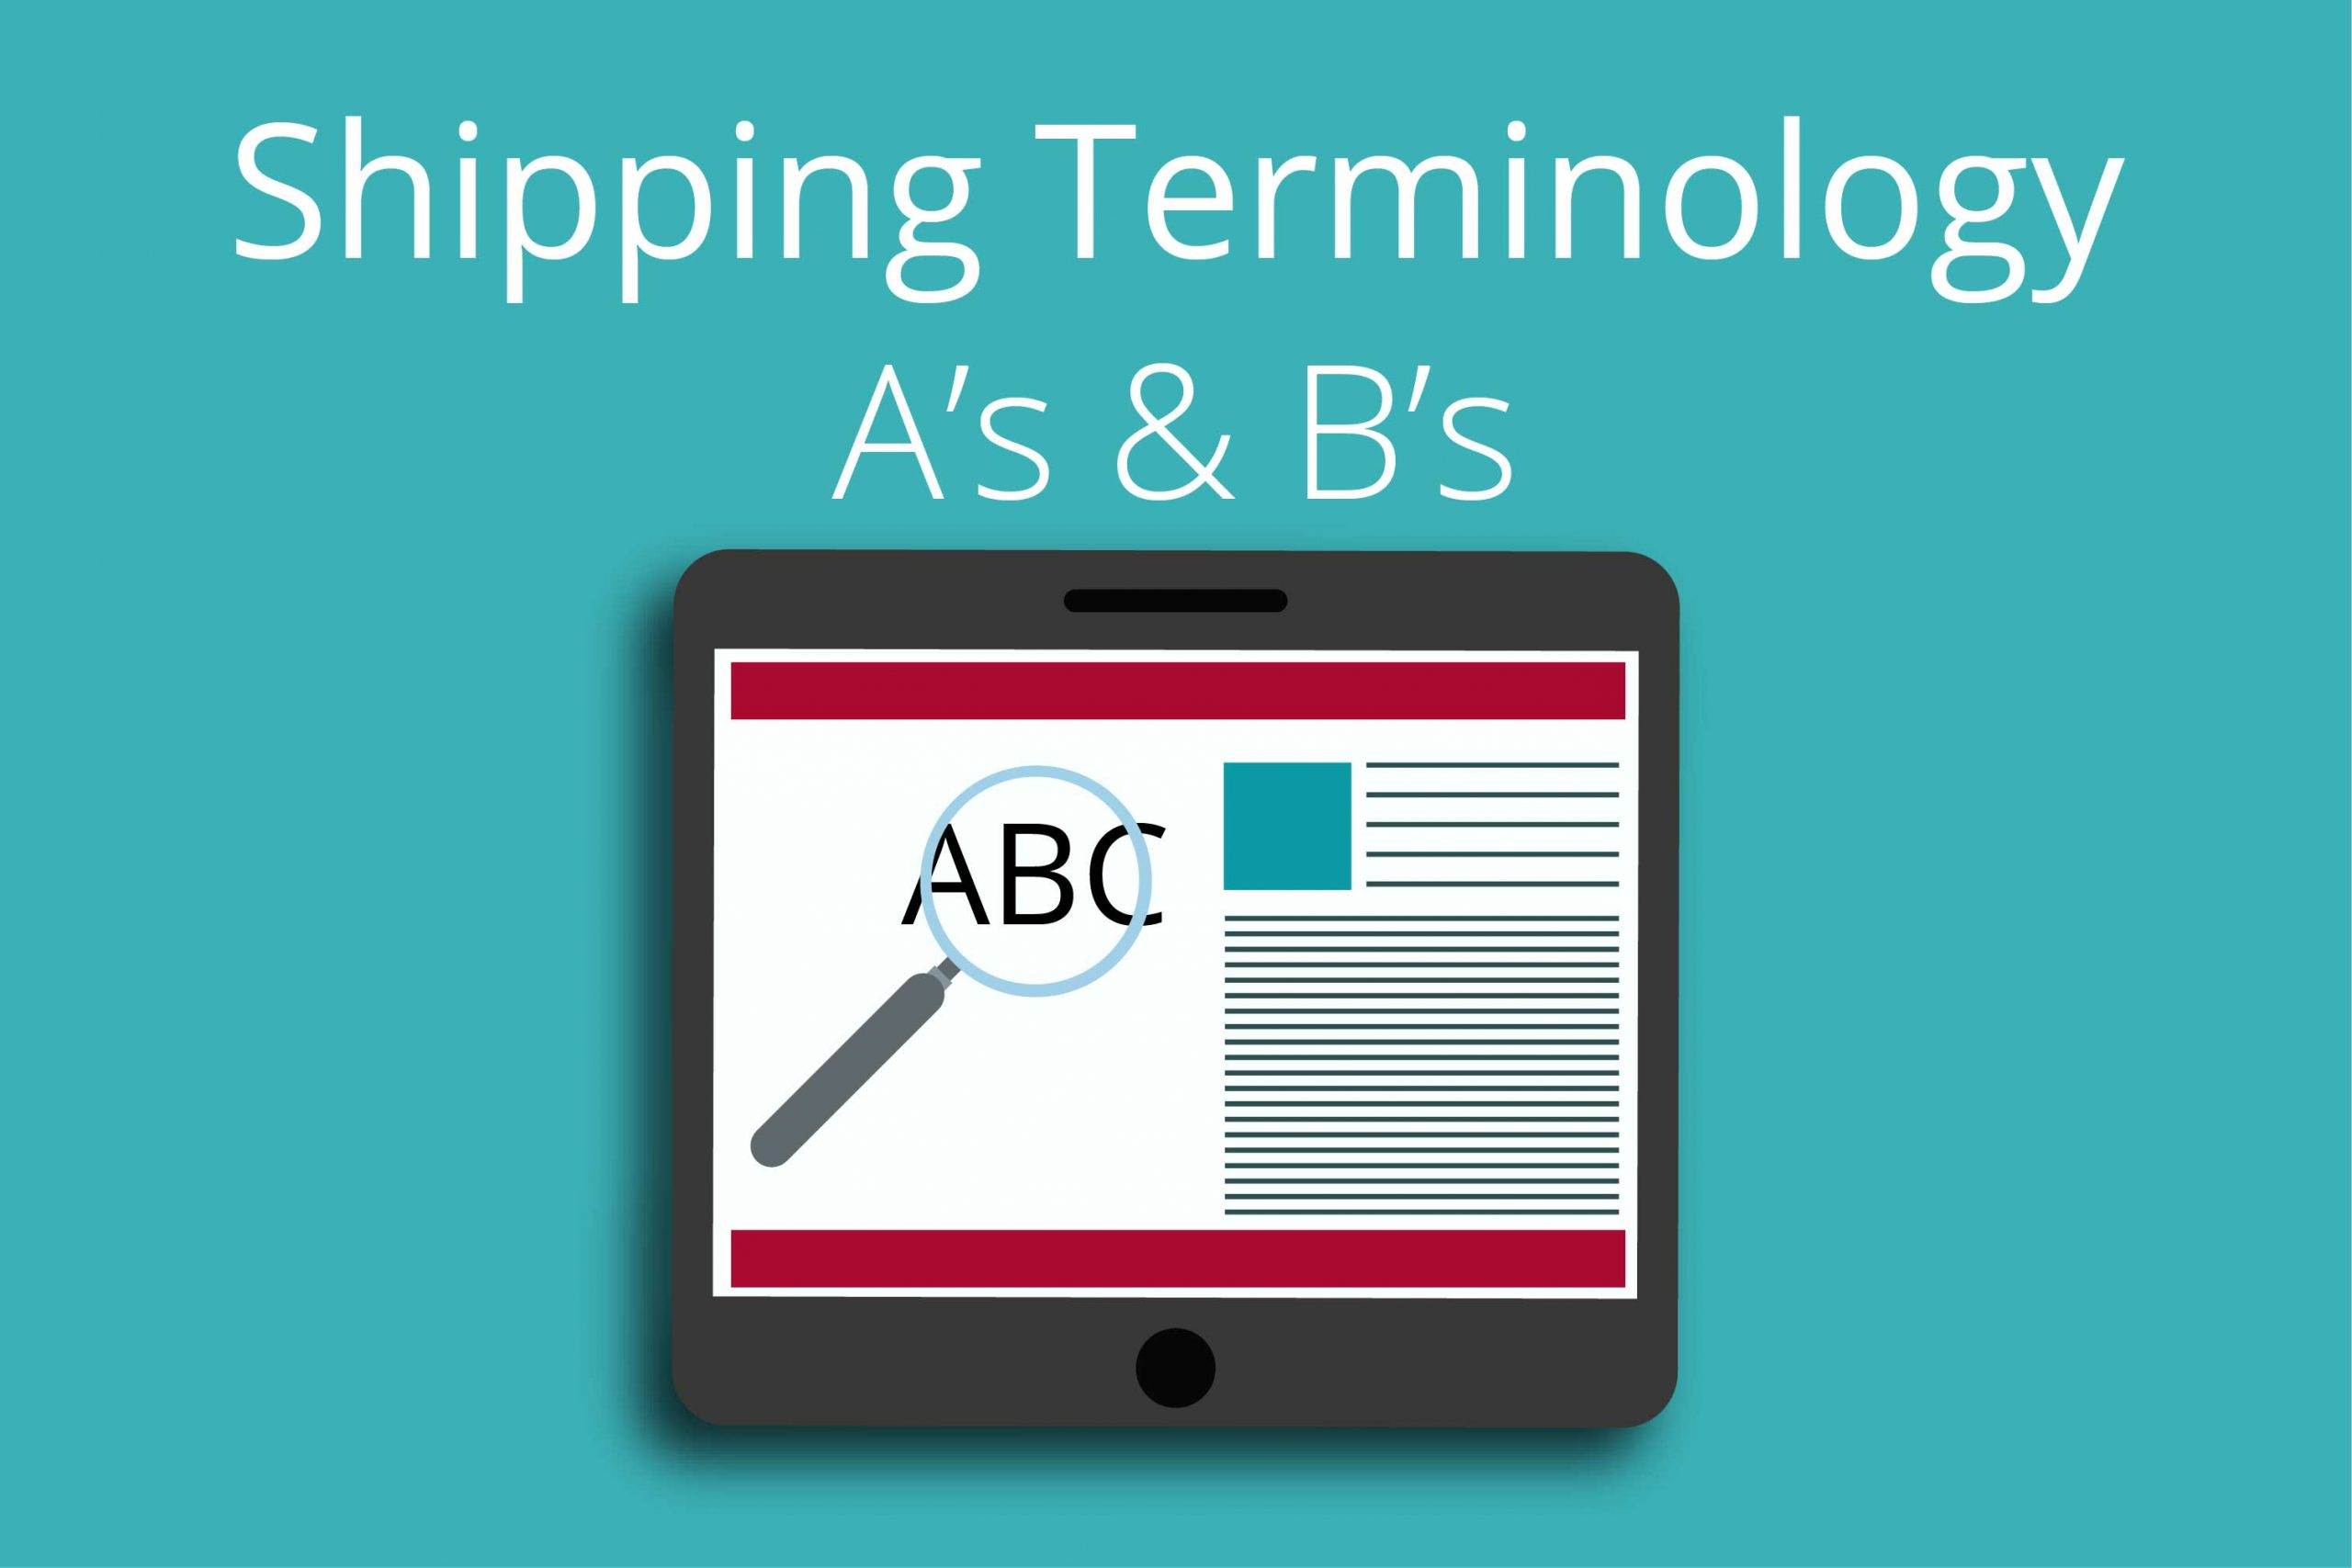 Shipping Terminology (A's & B's)